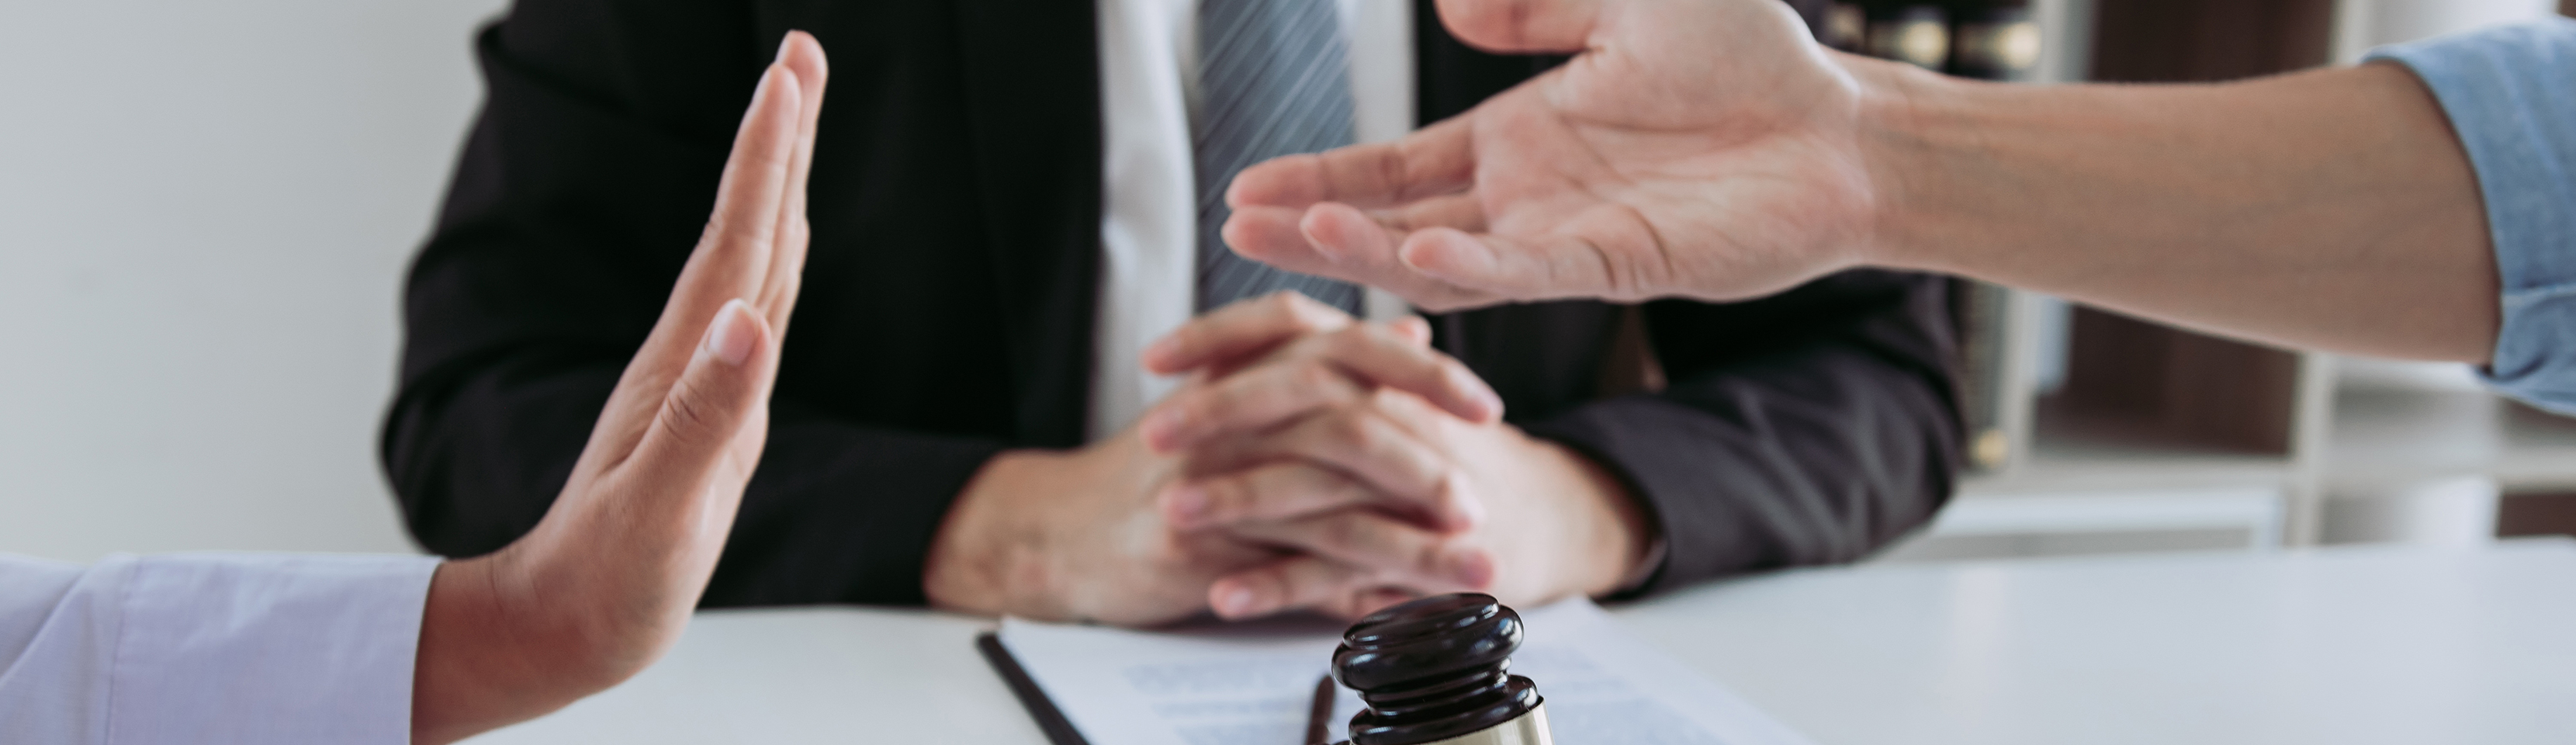 Statements of Costs in Maryland Attorney Discipline Cases